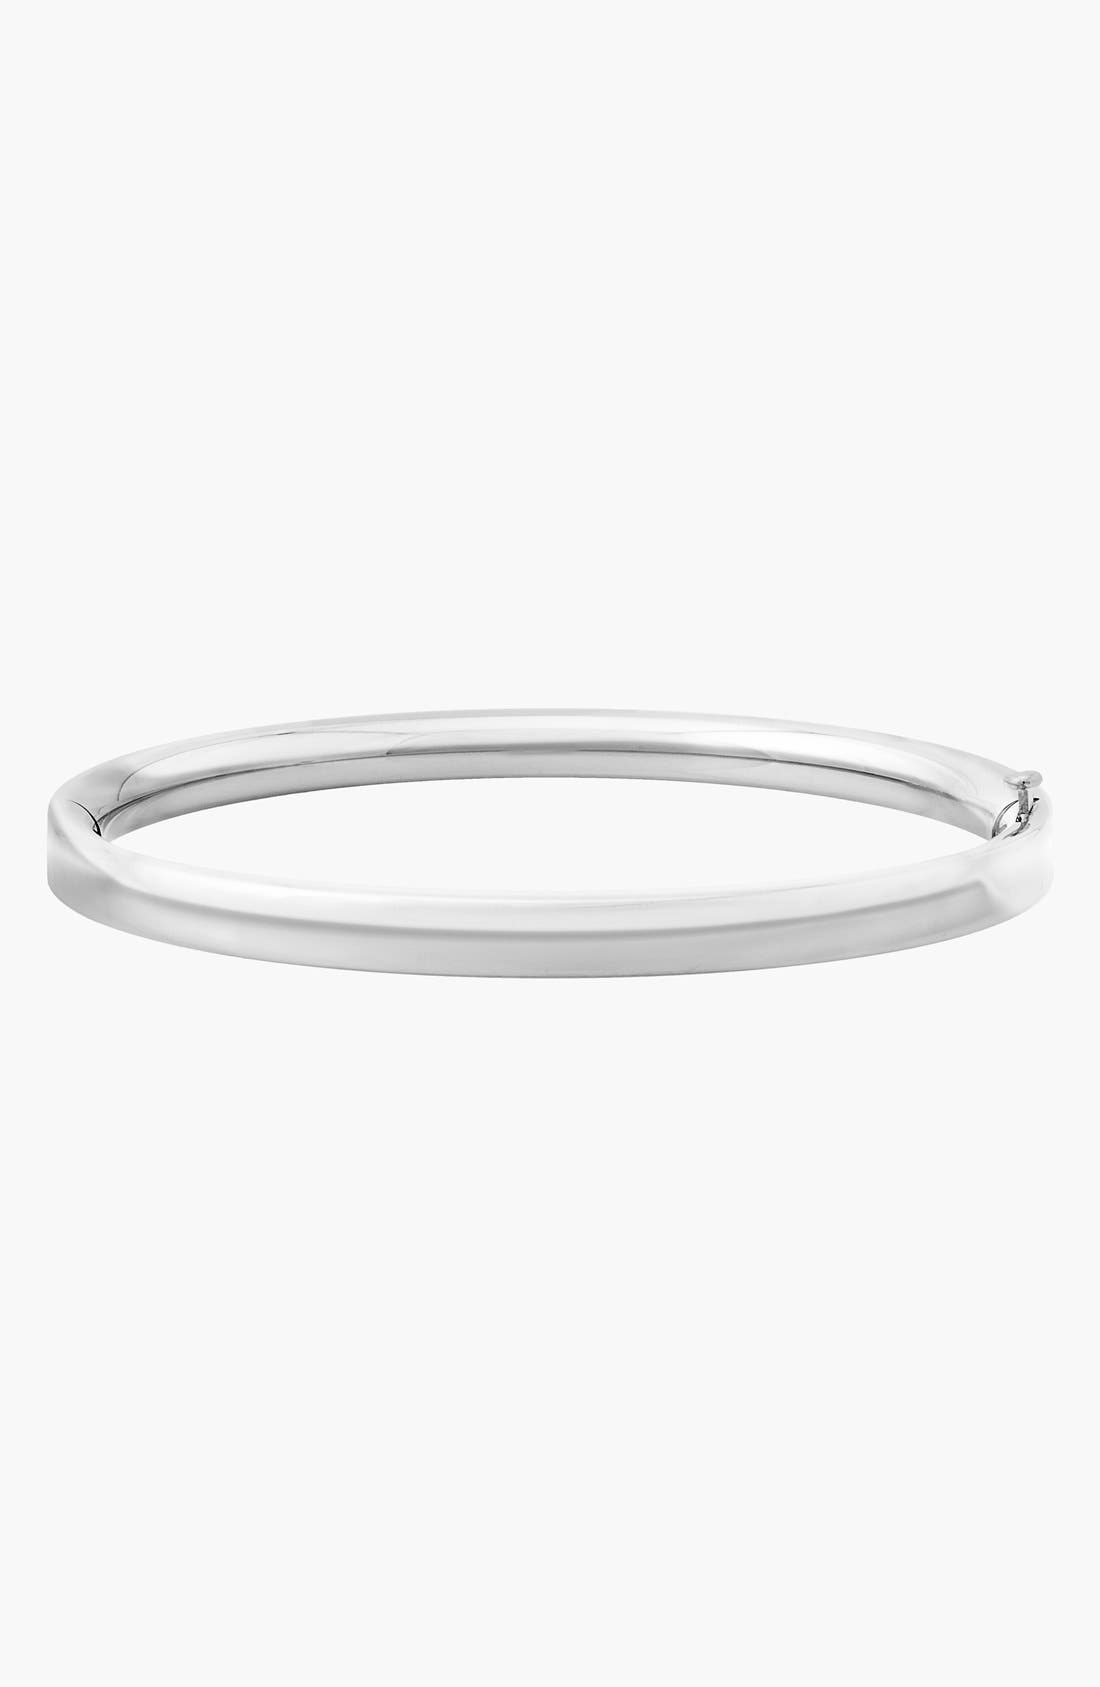 14k White Gold Bracelet,                         Main,                         color, WHITE GOLD